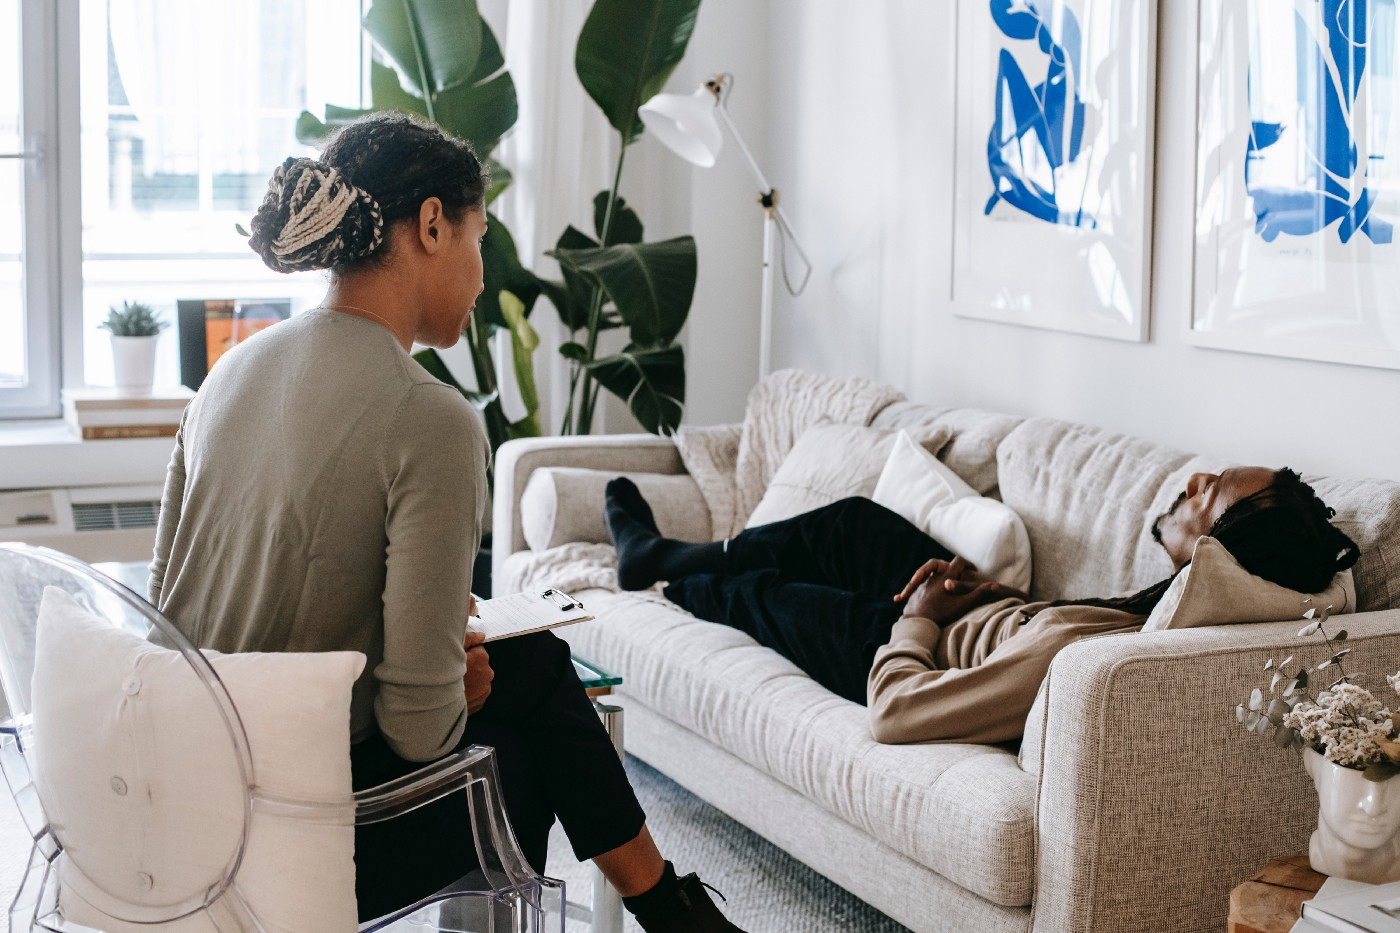 A therapist working with a client.